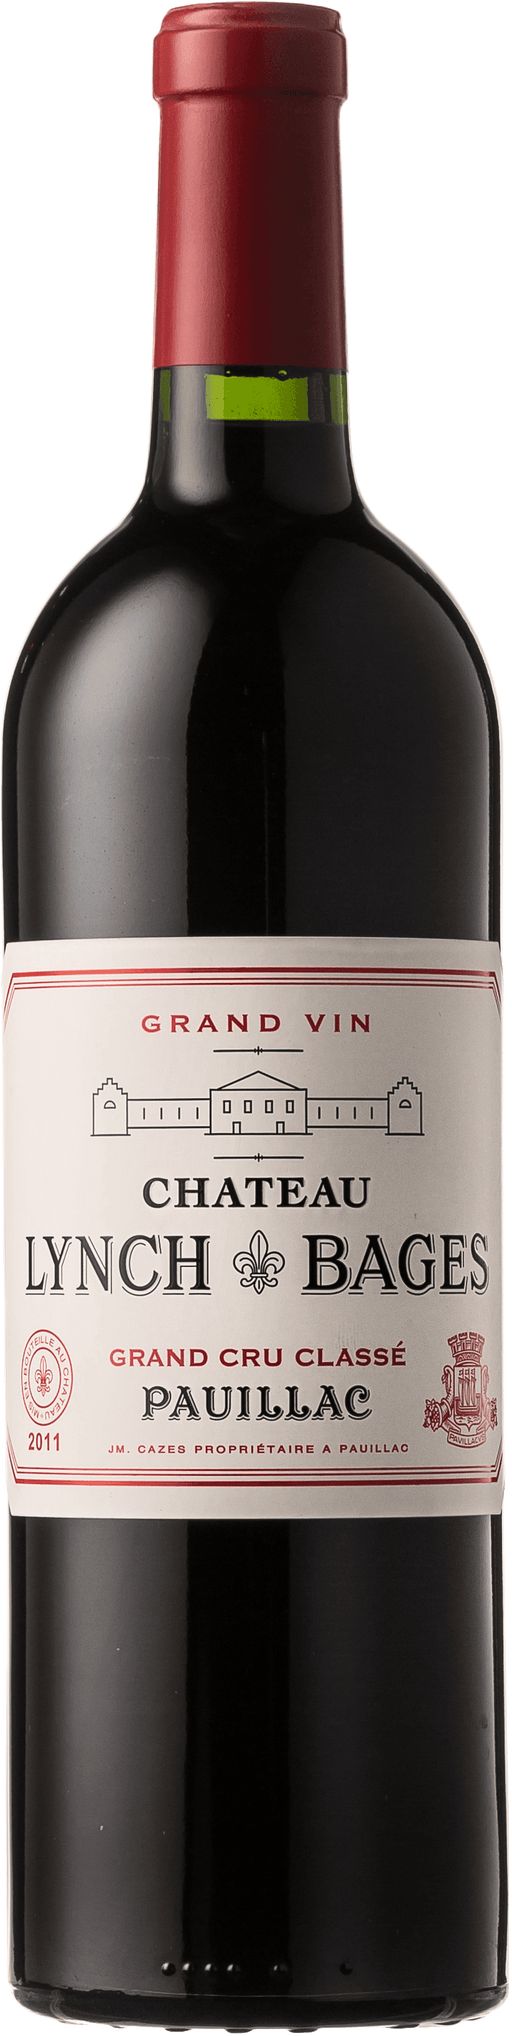 Chateau Lynch Bages - 2015